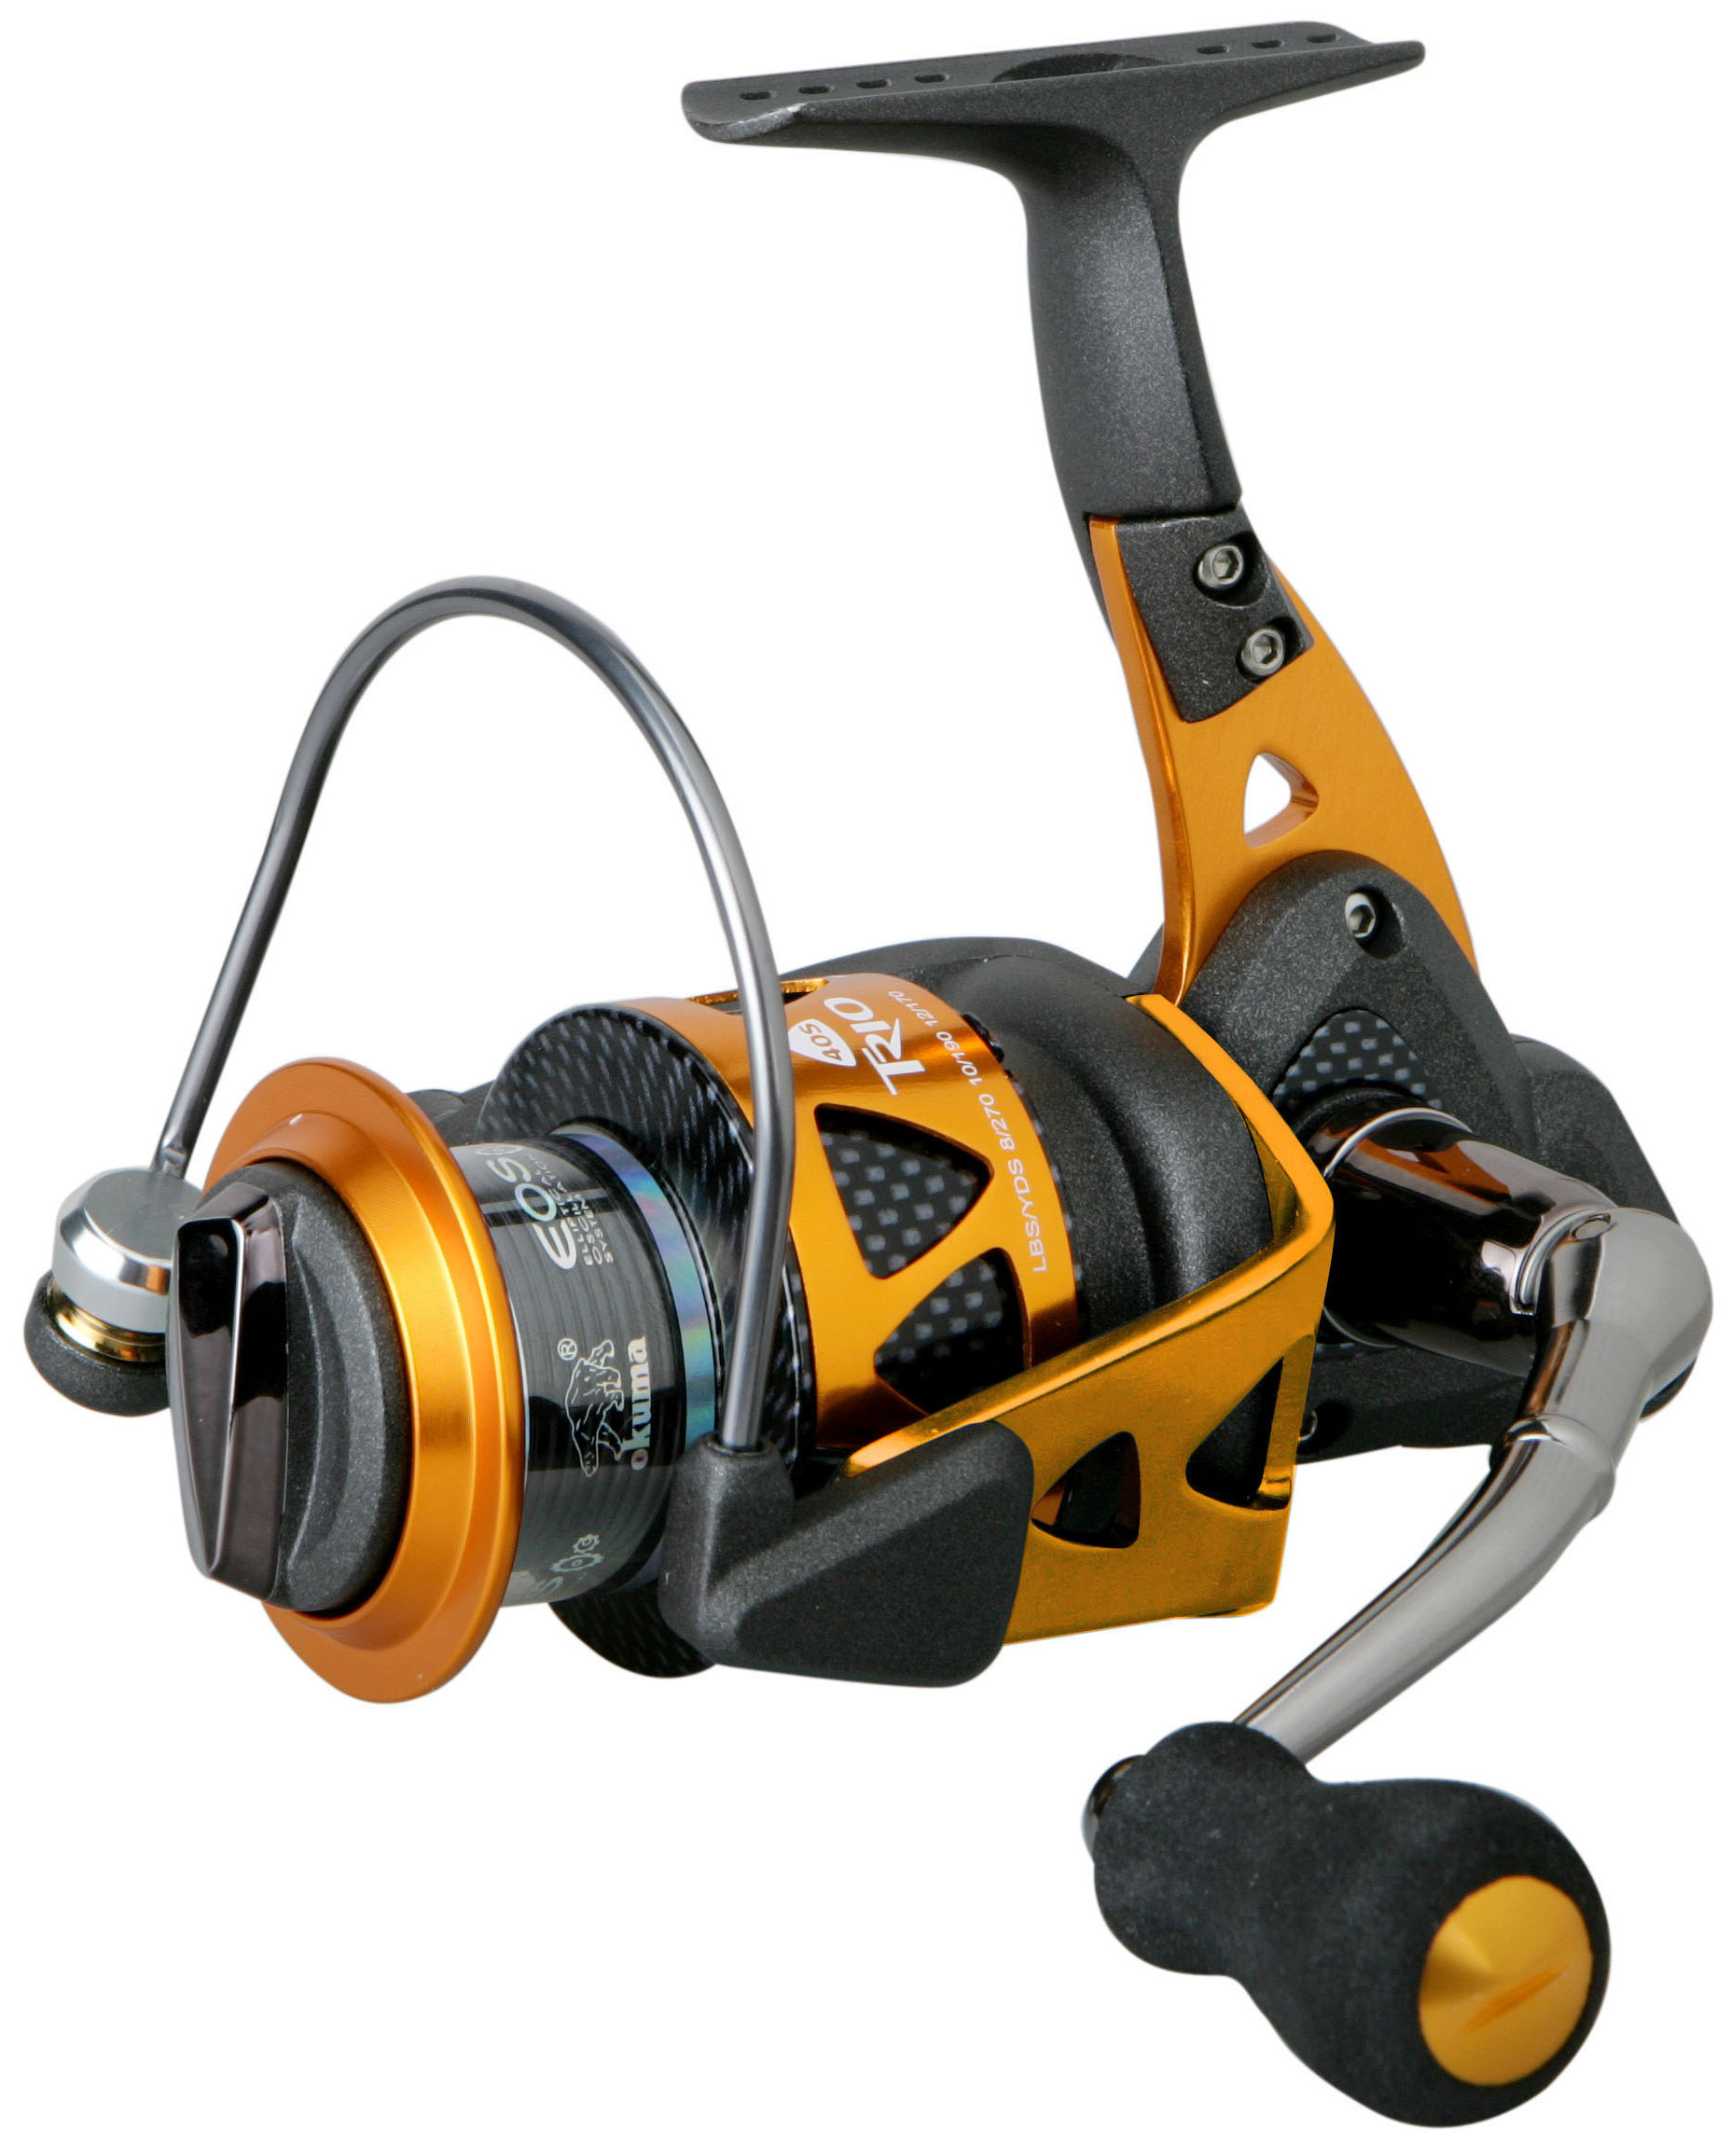 Fixed Spool Reels Glasgow Angling Centre